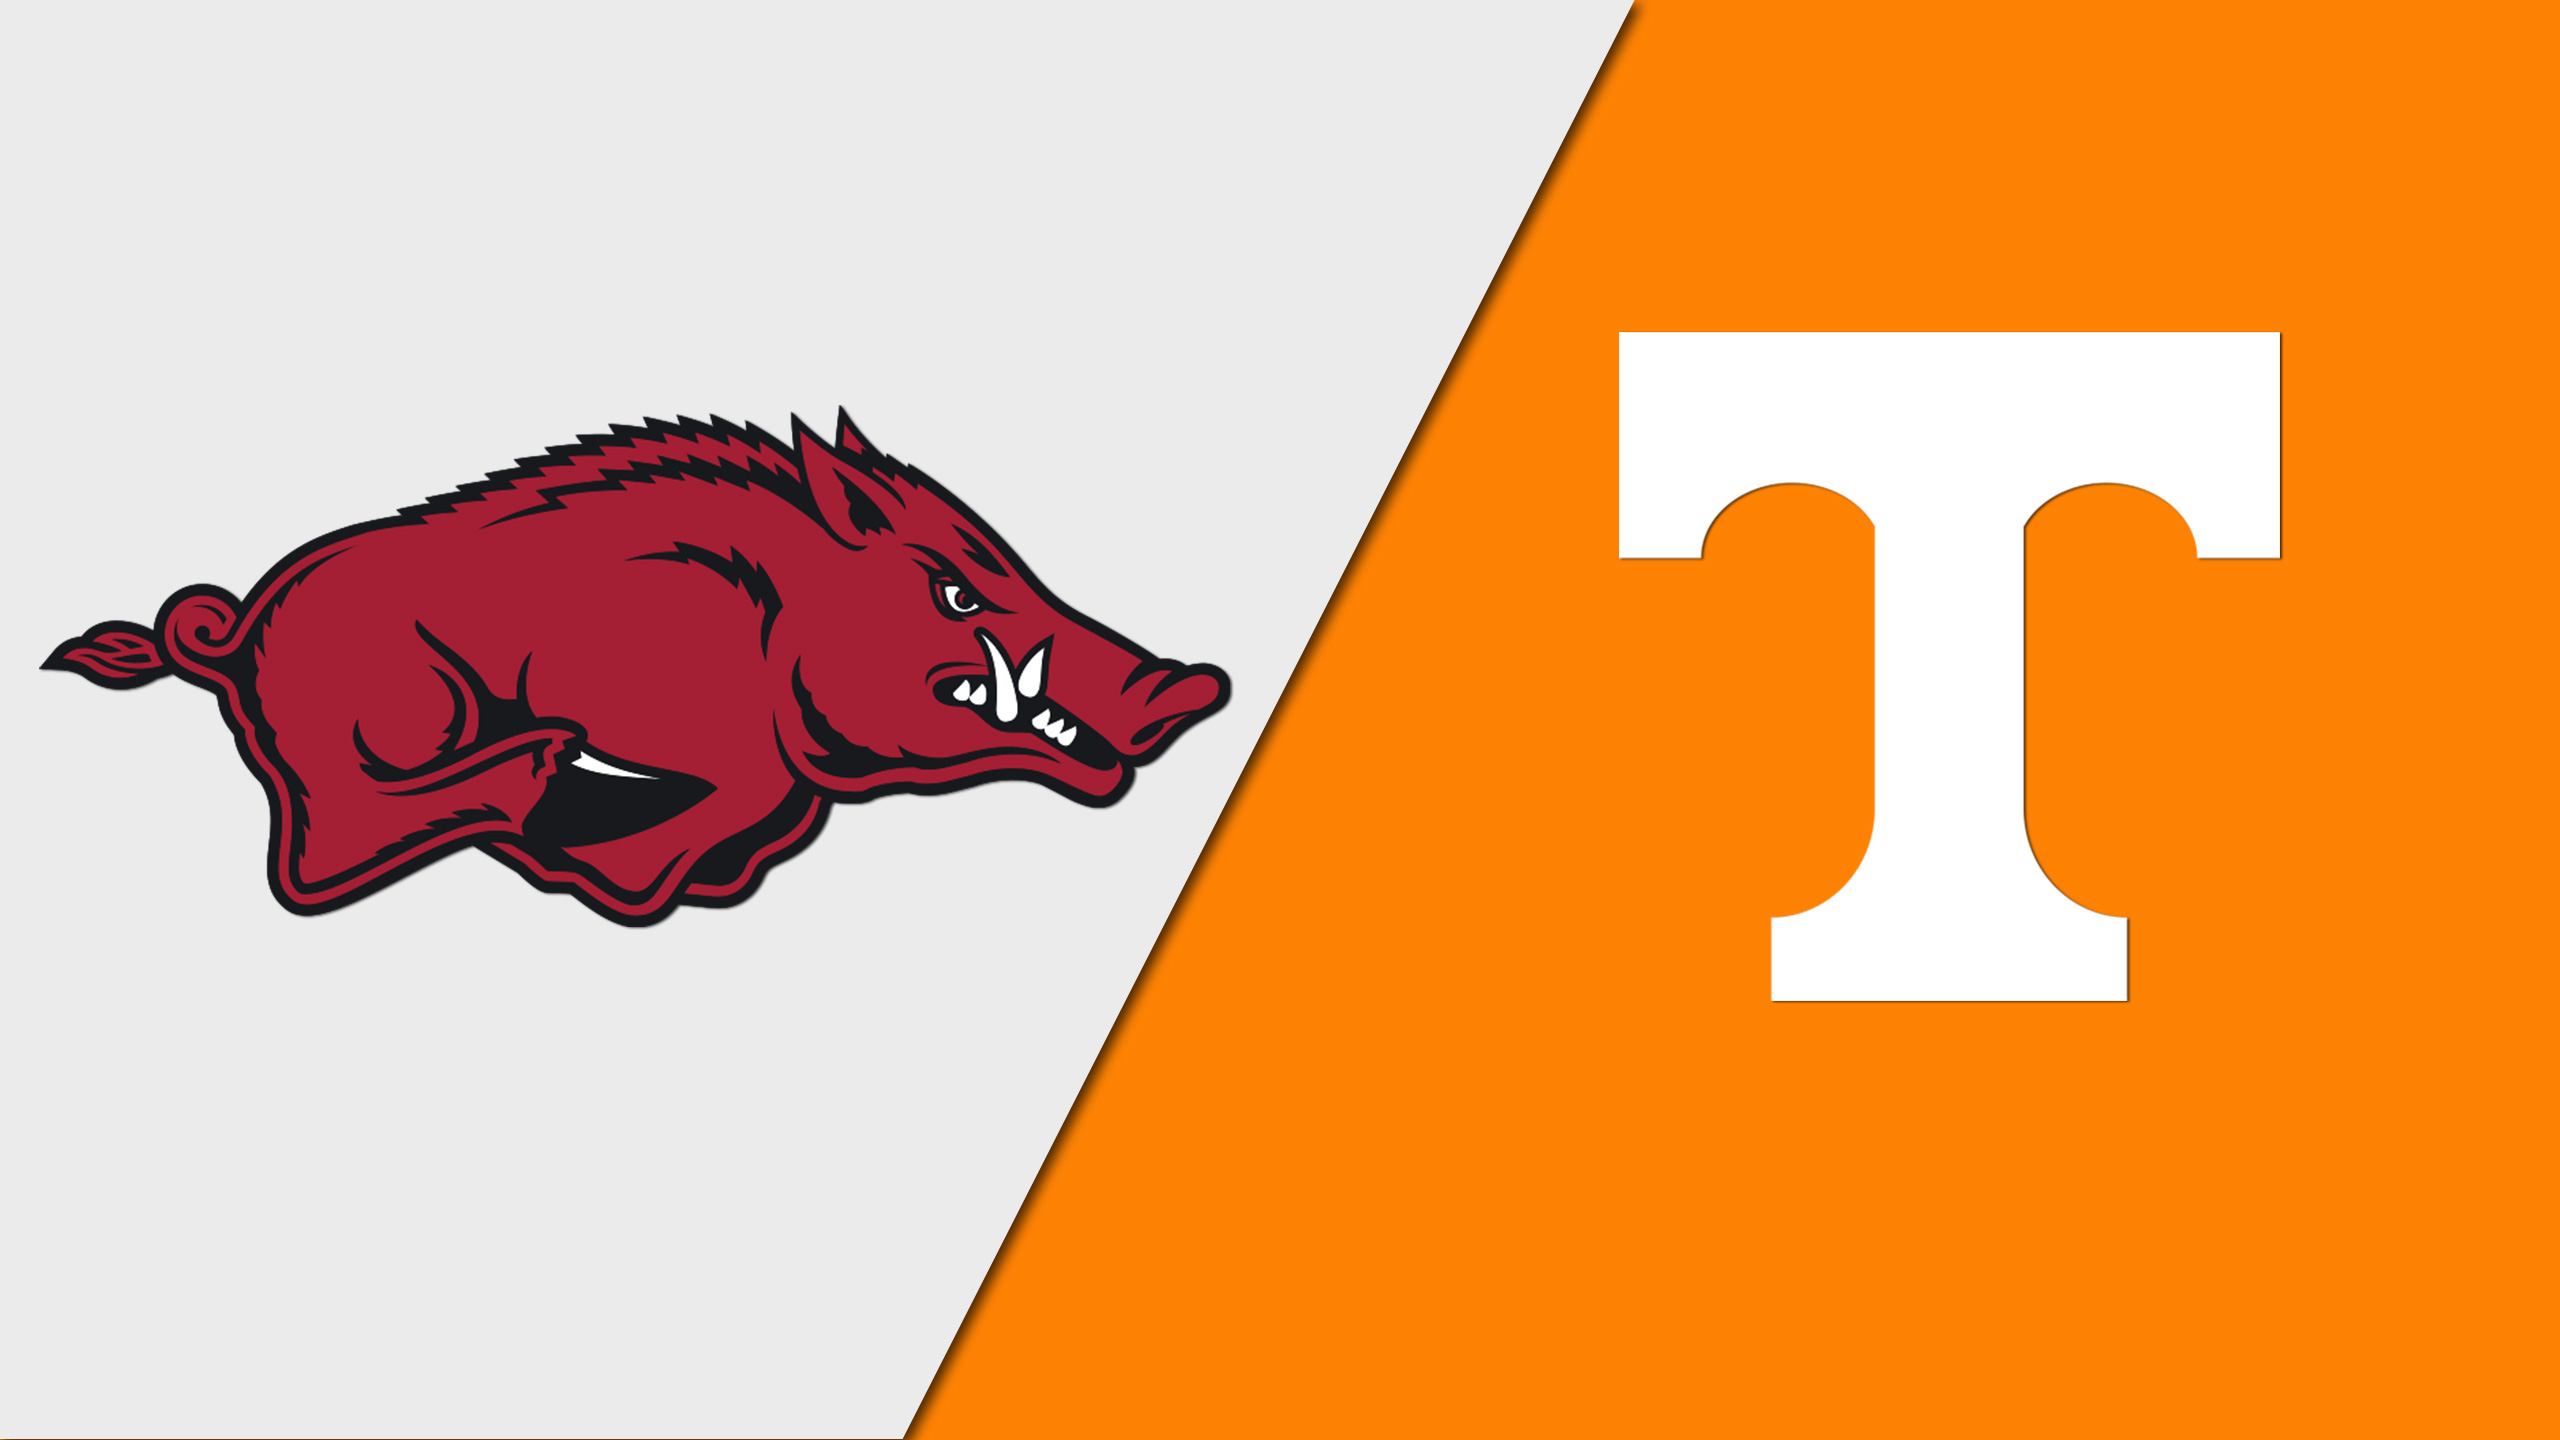 #18 Arkansas vs. #5 Tennessee (Softball)